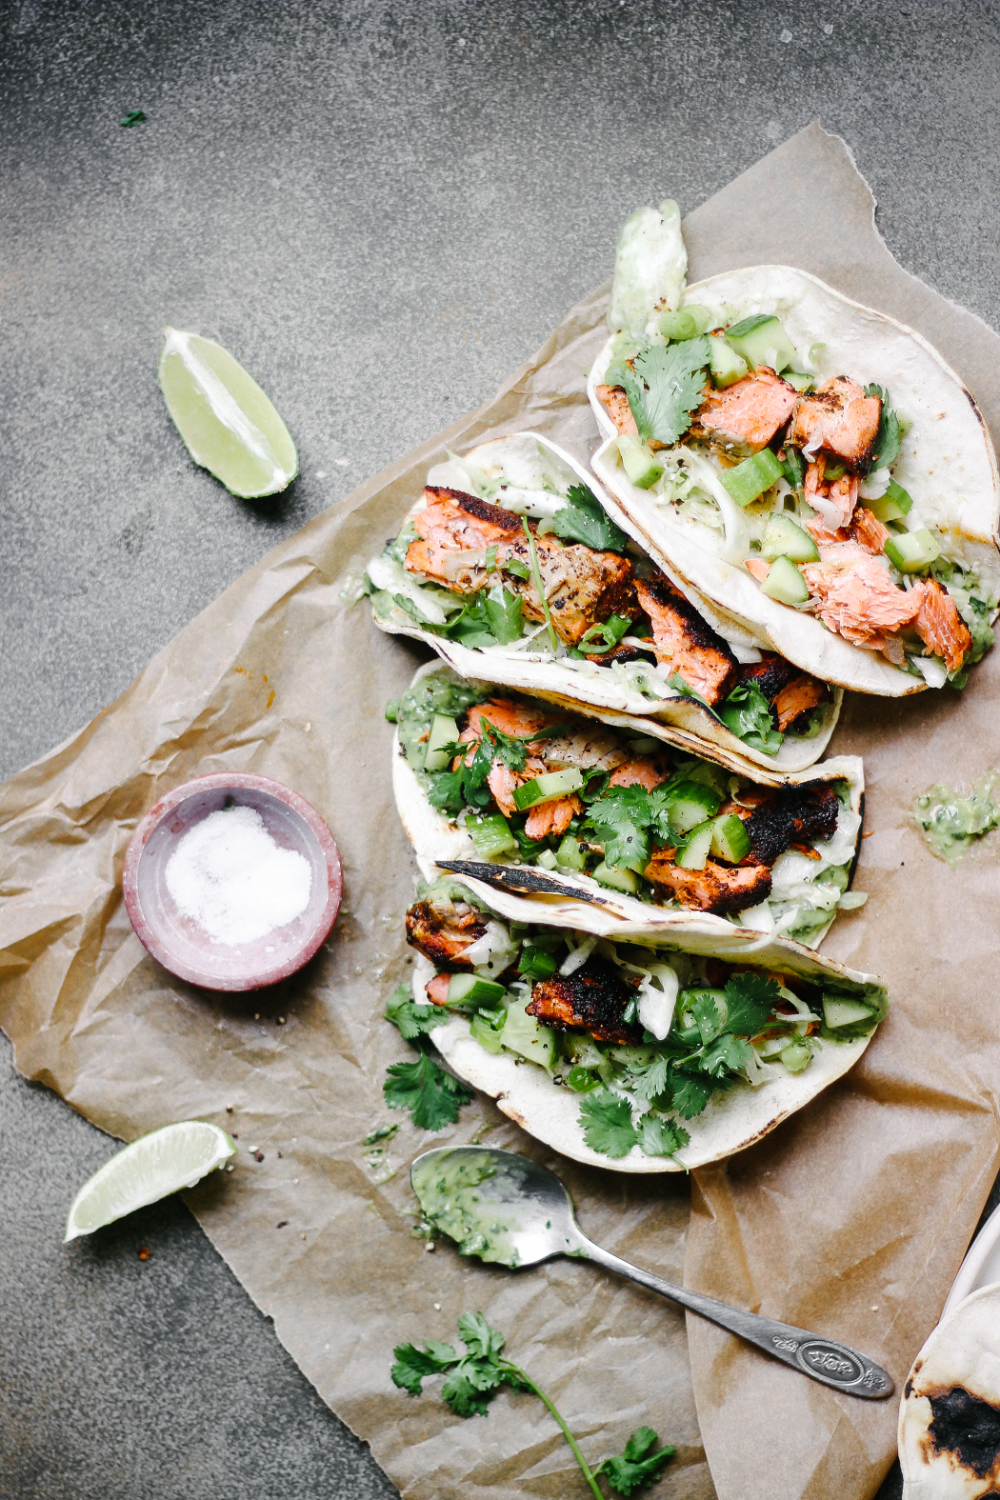 Blackened Salmon Tacos with Avocado Cilantro Sauce and Cabbage Slaw — The Feministe